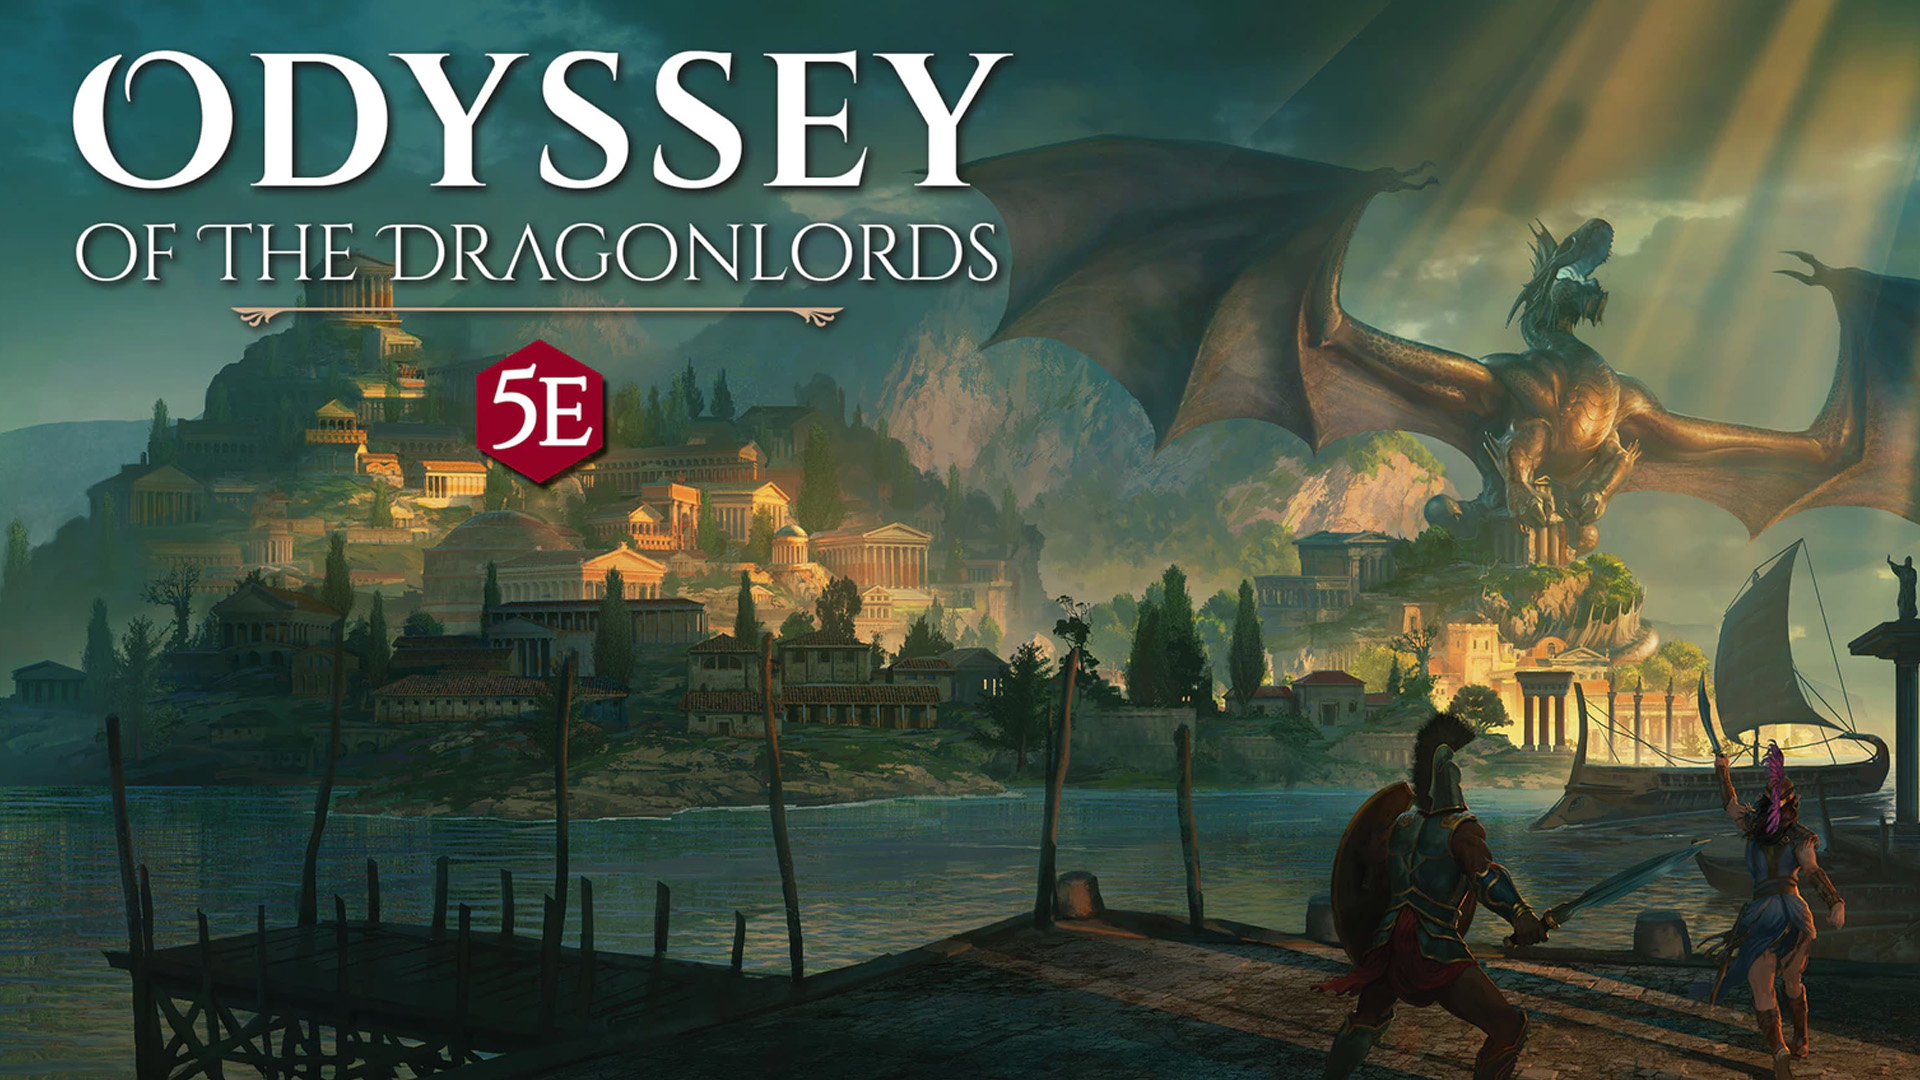 Odyssey of the Dragonlords from Arcanum Worlds and Modiphius